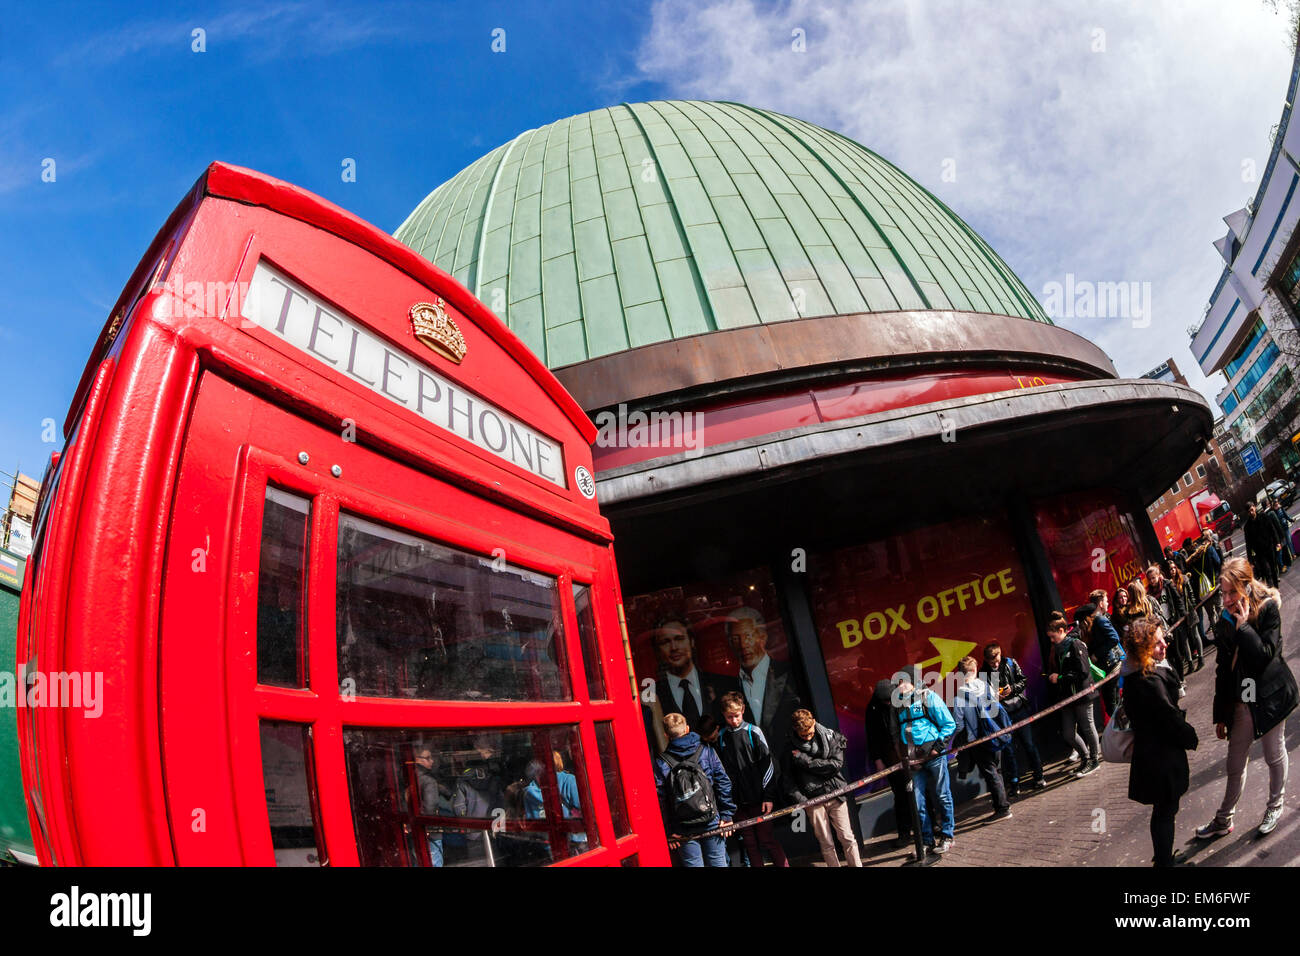 Madame Tussaud's and red telephone box, London - Stock Image